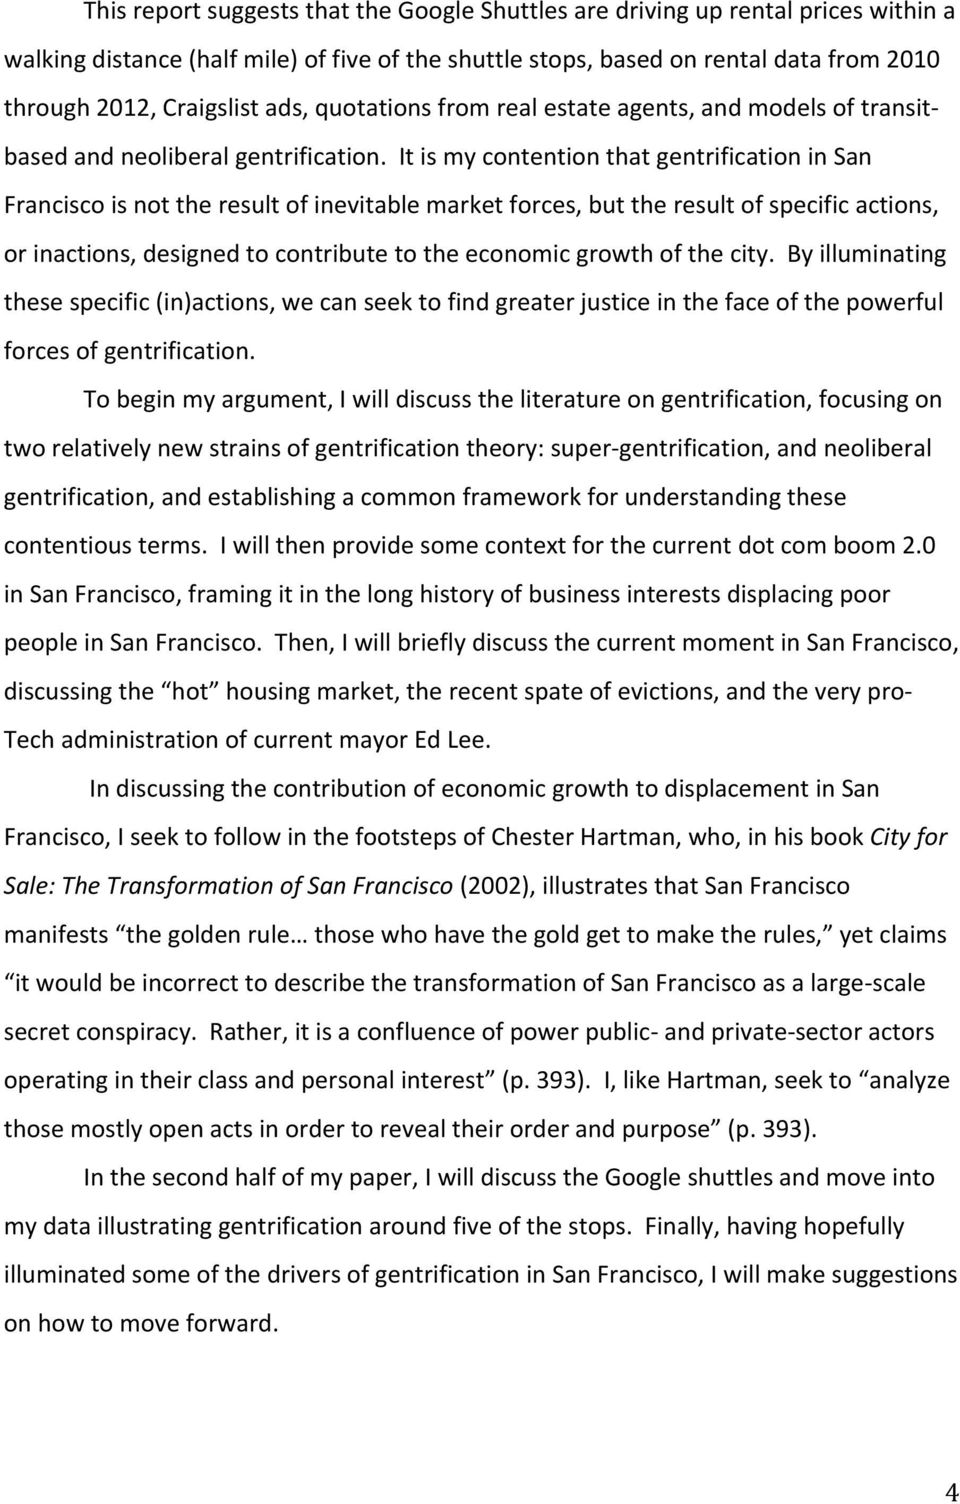 It is my contention that gentrification in San Francisco is not the result of inevitable market forces, but the result of specific actions, or inactions, designed to contribute to the economic growth